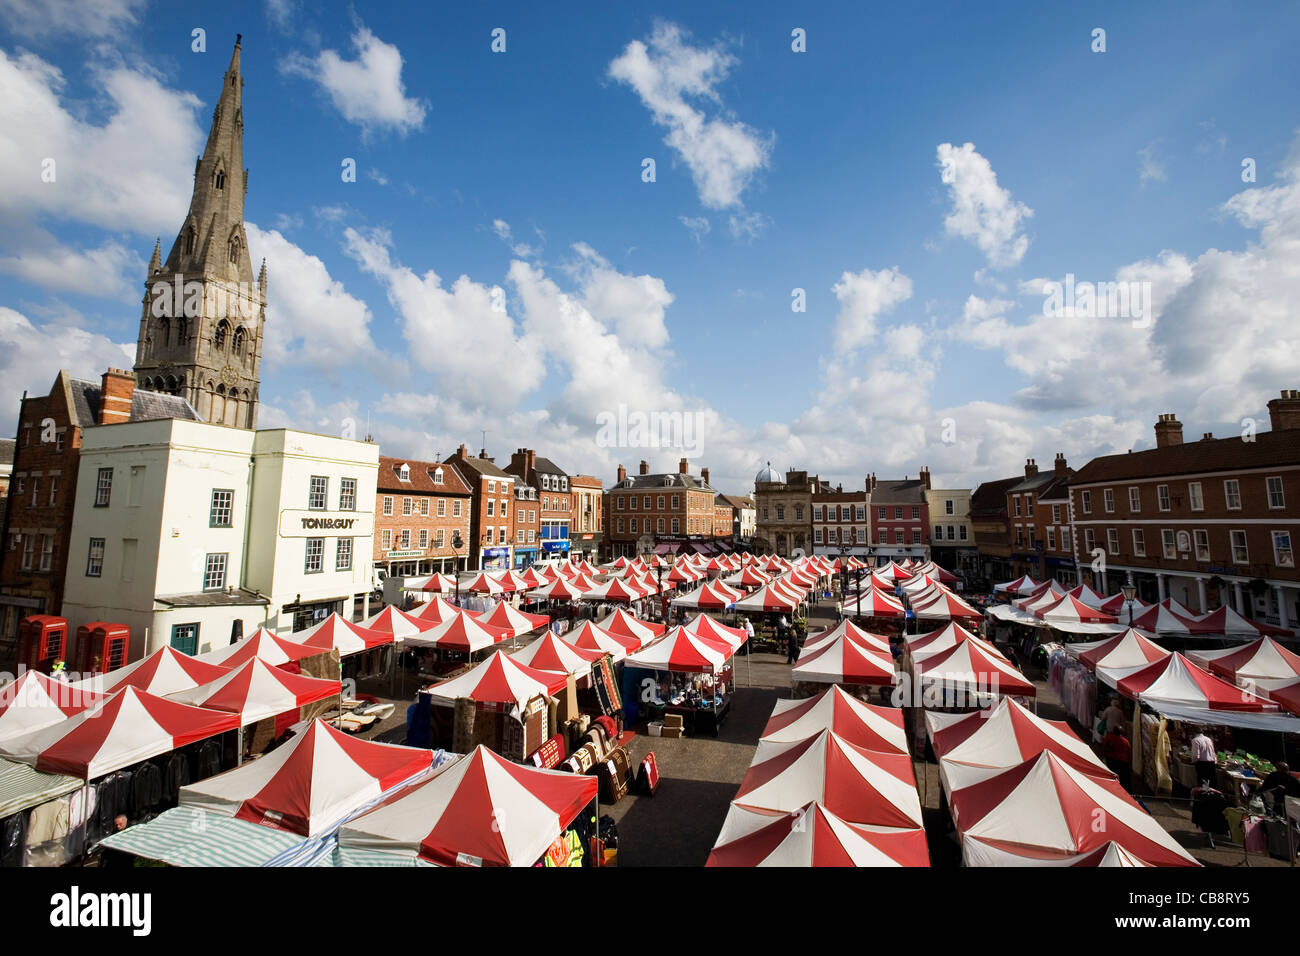 Newark-on-Trent Nottinghamshire Market Square in Summer with People Shopping - Stock Image